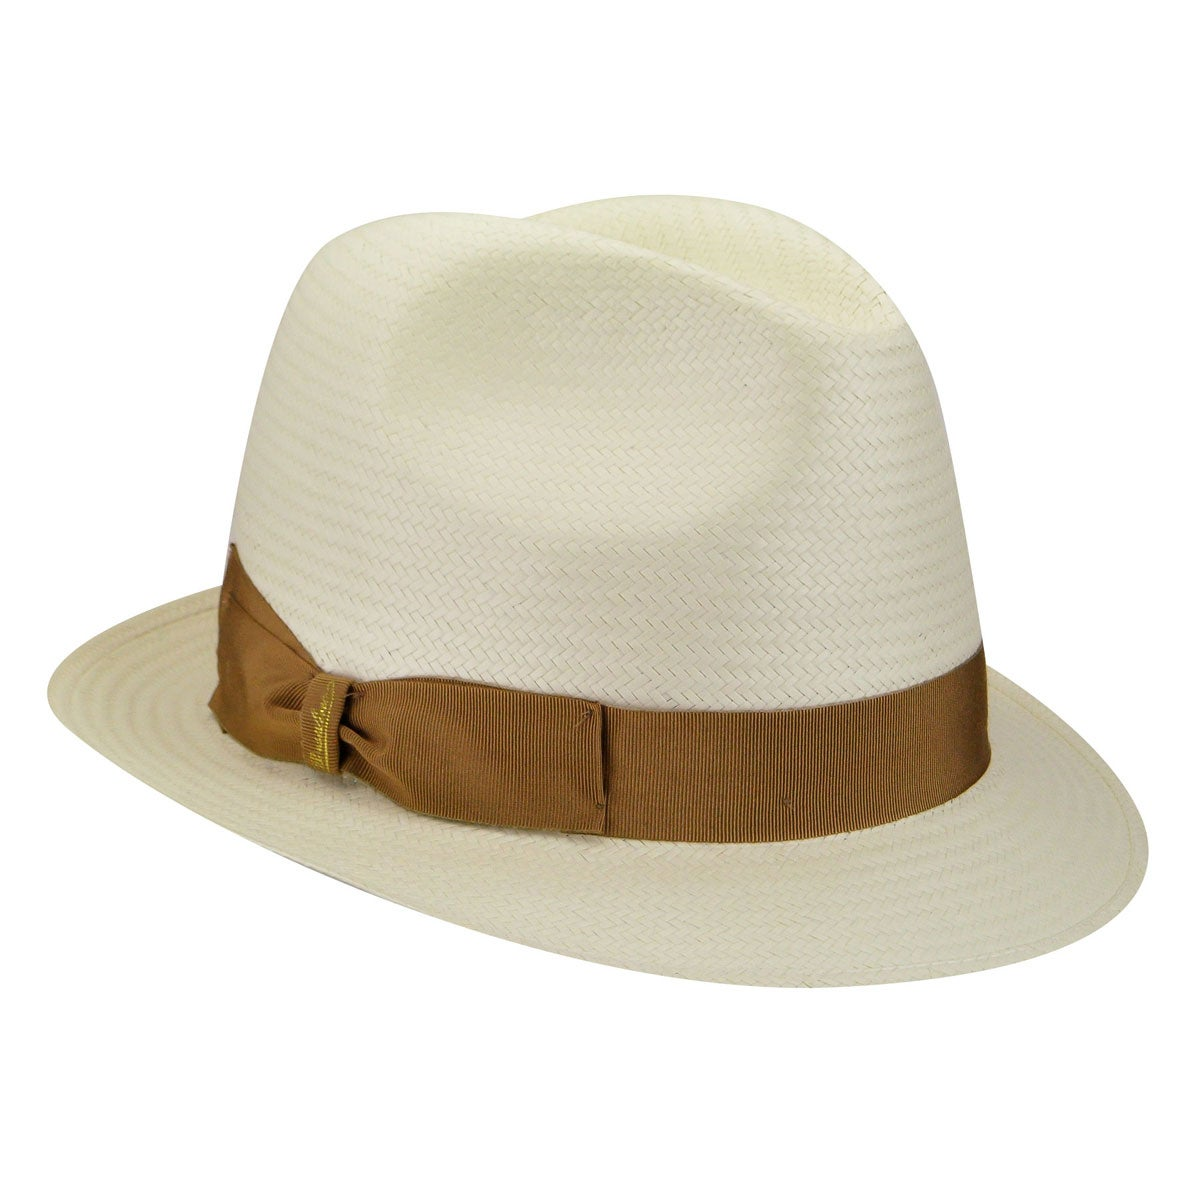 1940s Style Mens Hats 232011 Tesa Piccola Fedora $210.00 AT vintagedancer.com